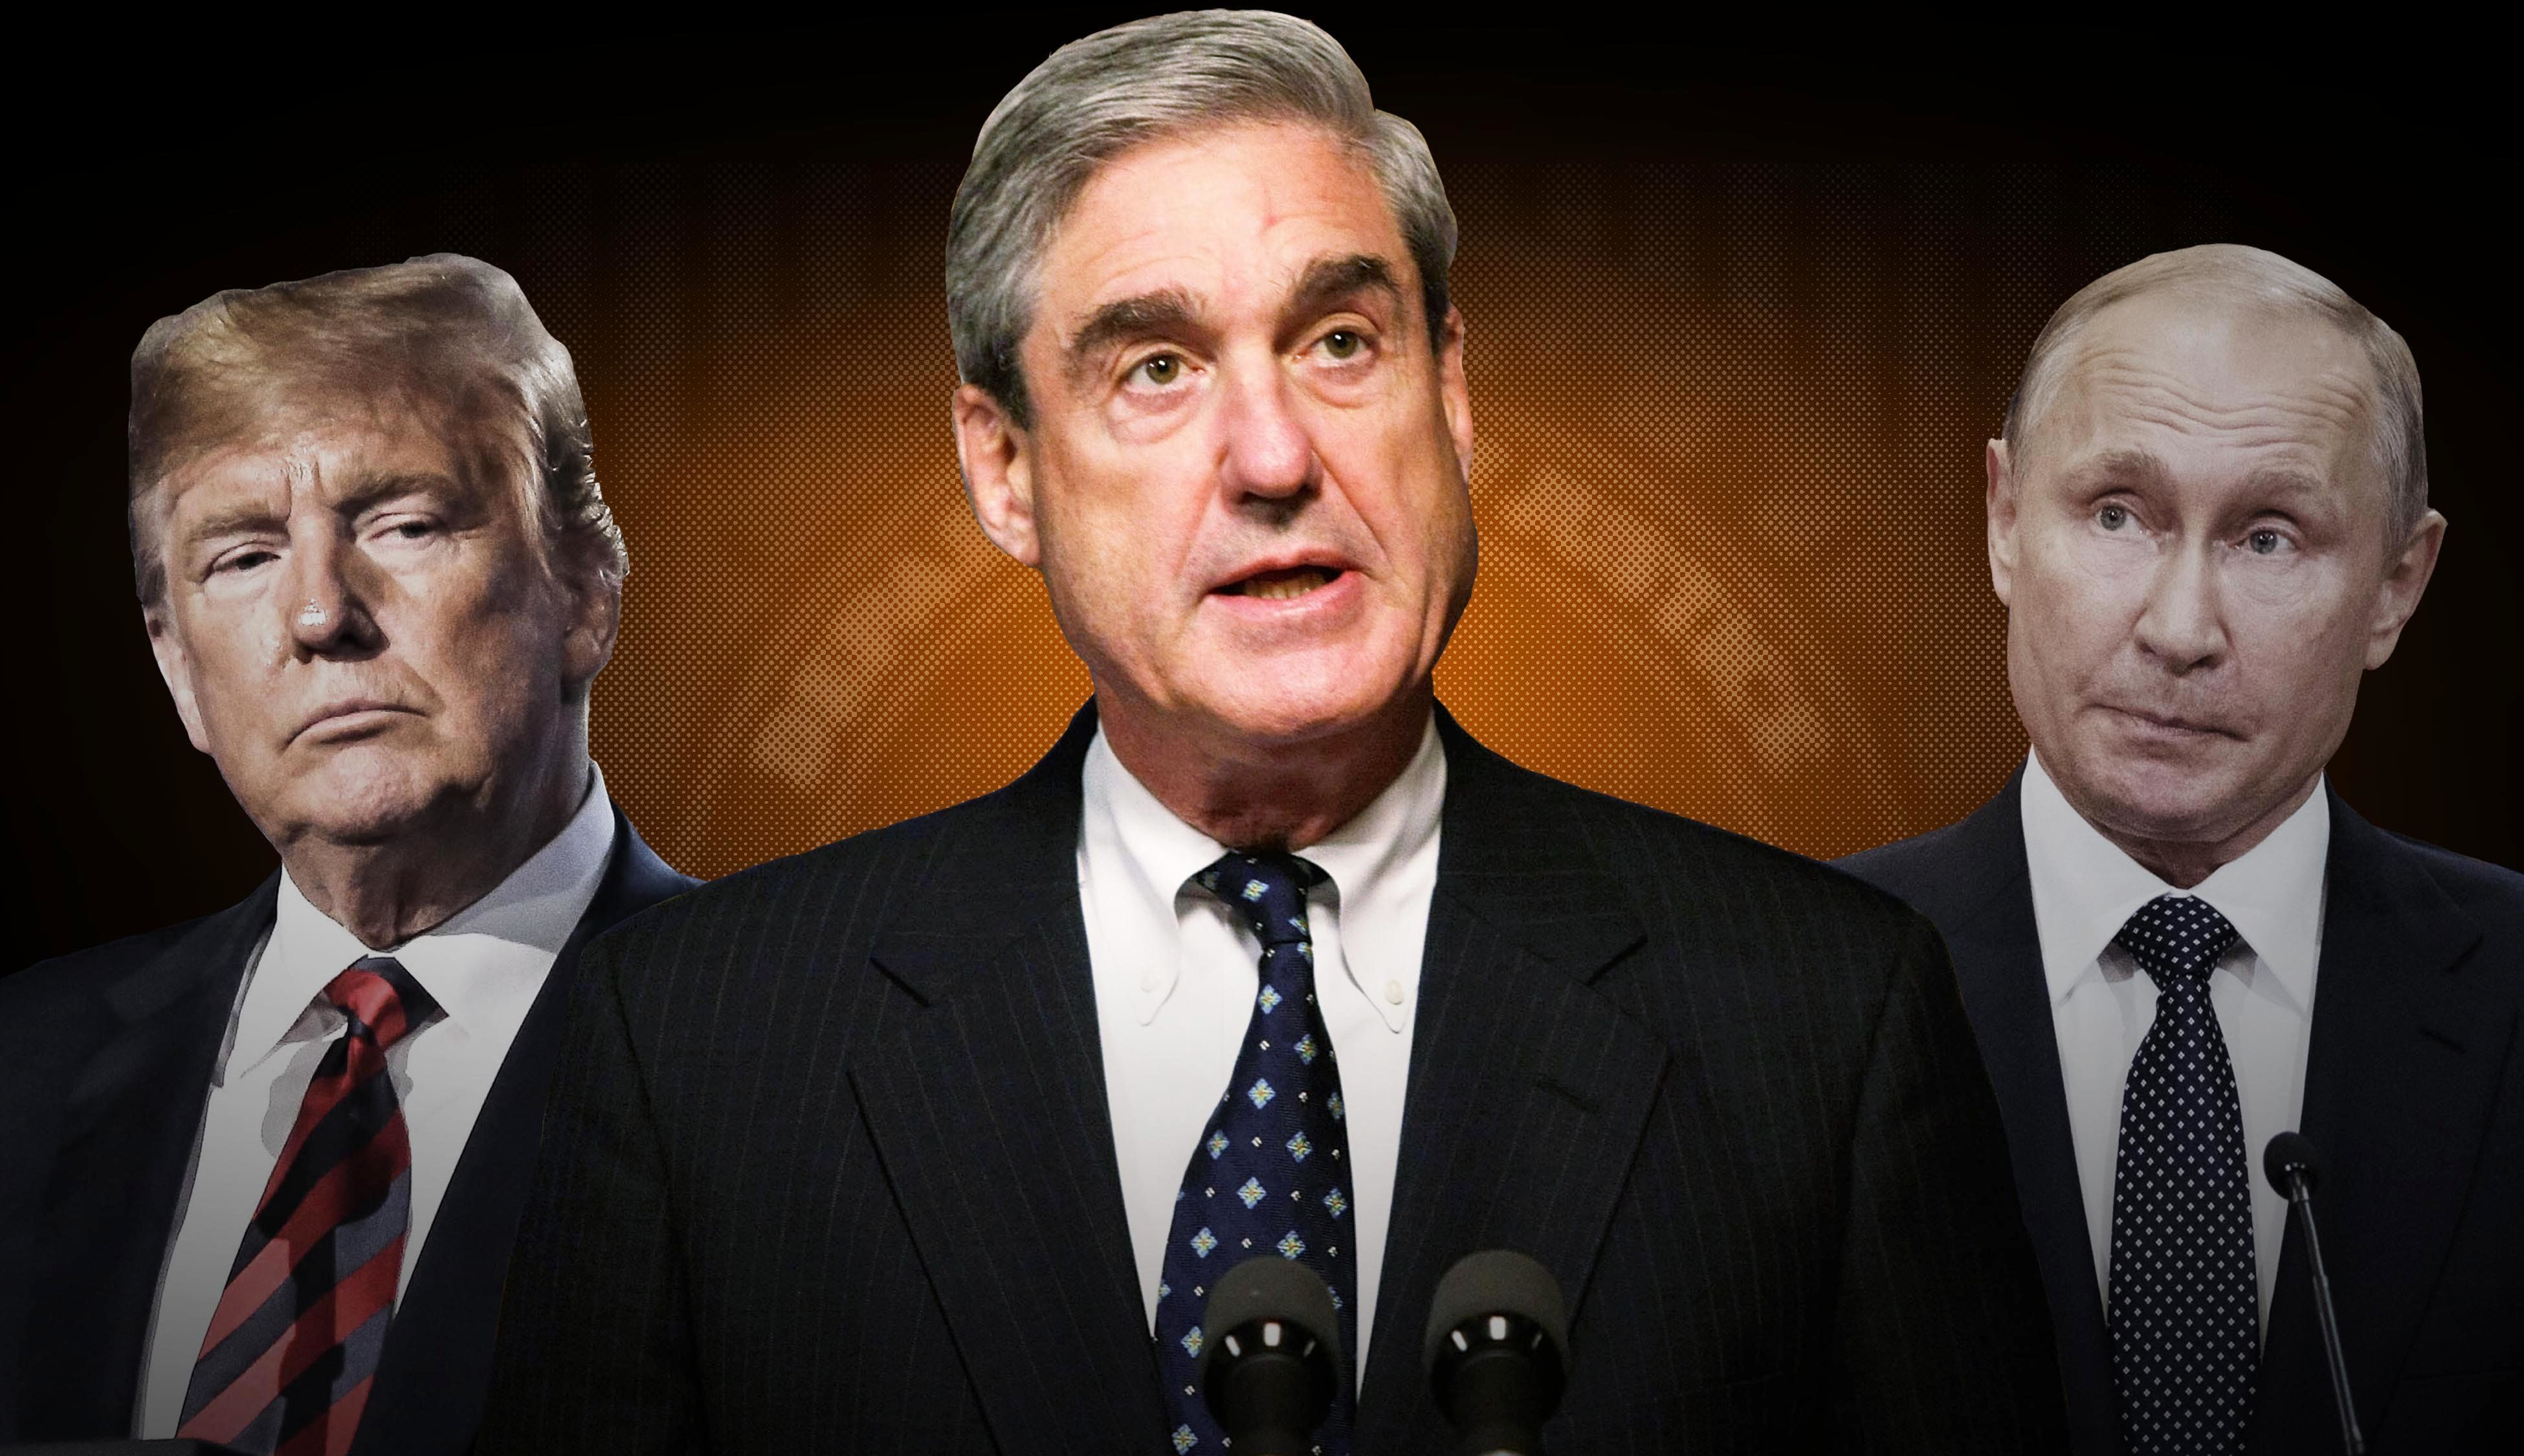 Special counsel Robert Mueller, center, is looking into Russian interference in the 2016 election. It's...